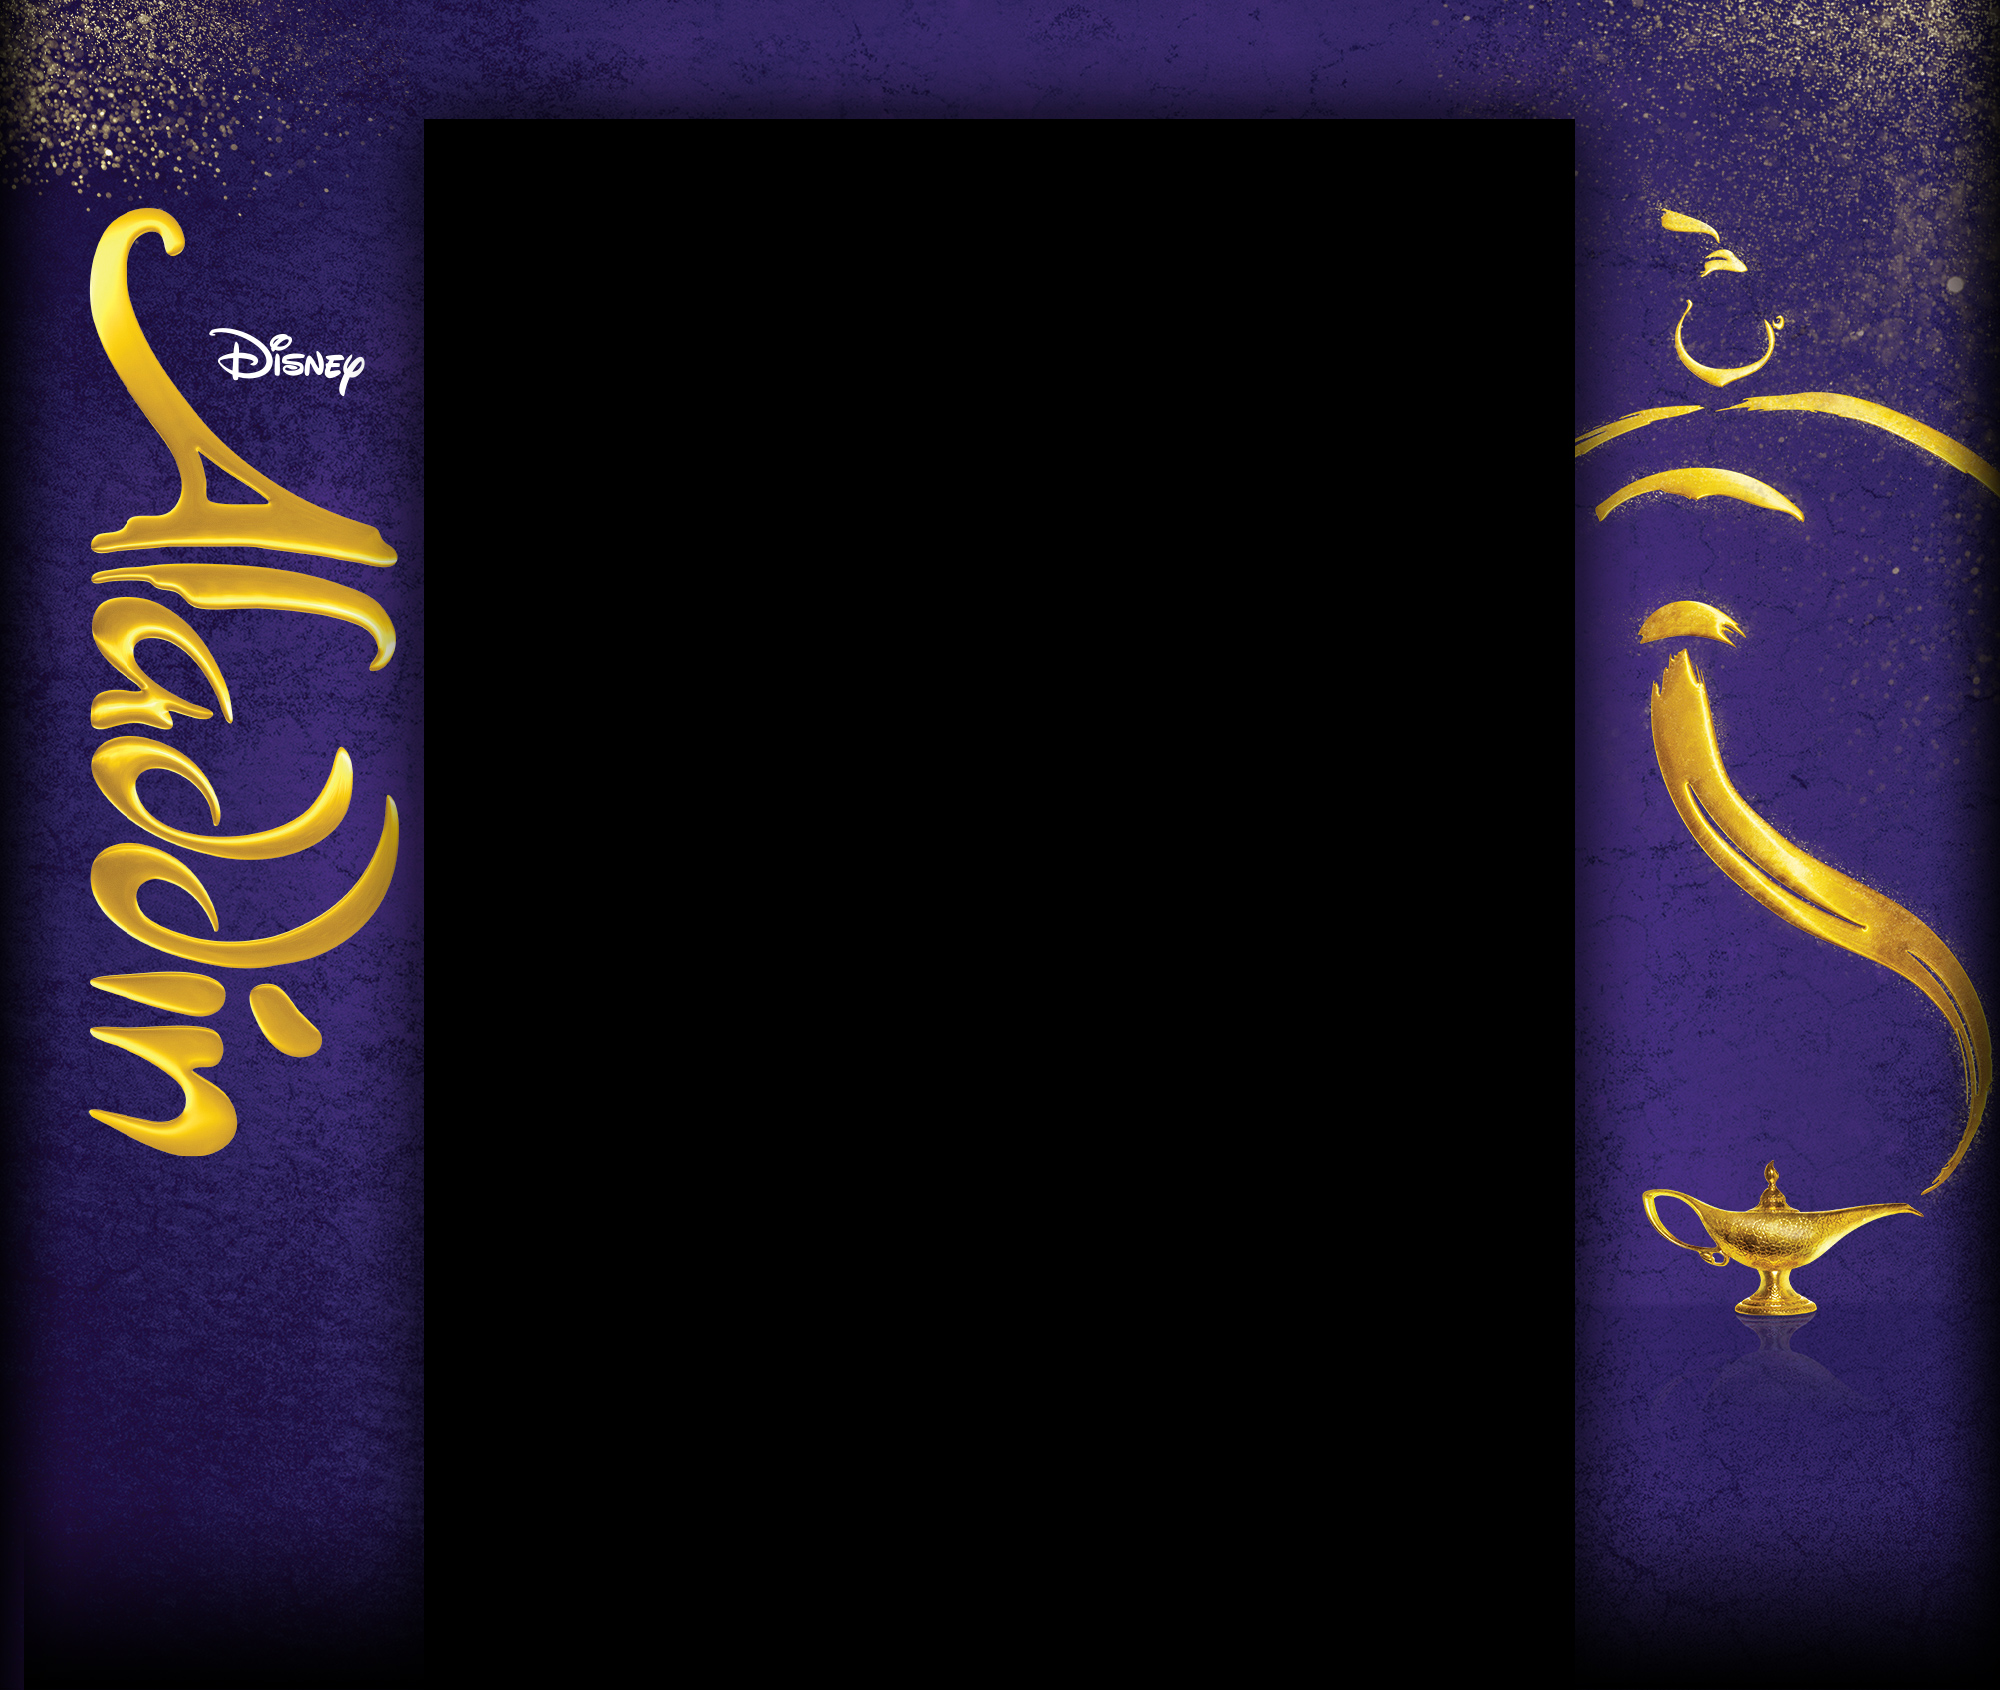 aladdin-background-v2.jpg